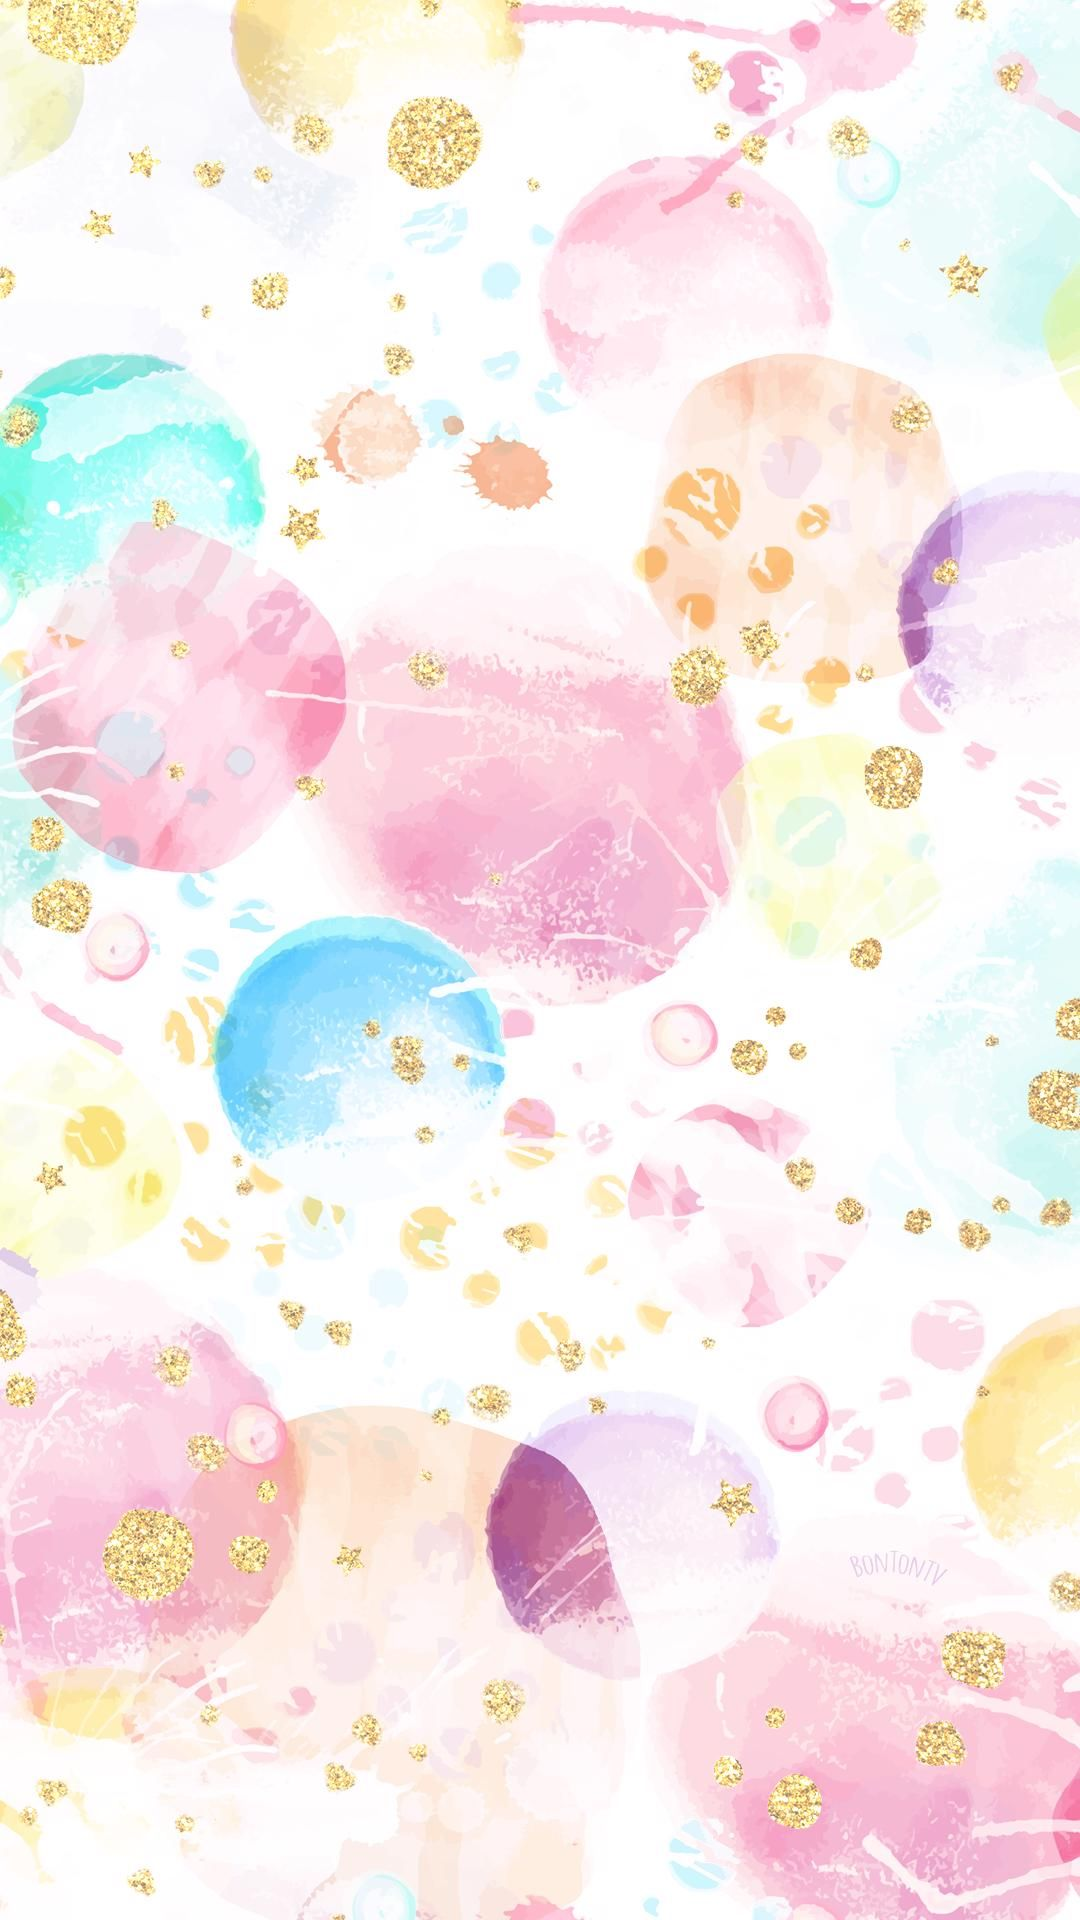 Phone Wallpapers HD Watercolor Gold  by BonTon TV  Free Backgrounds 1080x1920 wallpapers iPhone smartphone Here you can find a collection of elegant cute and girly colorf...